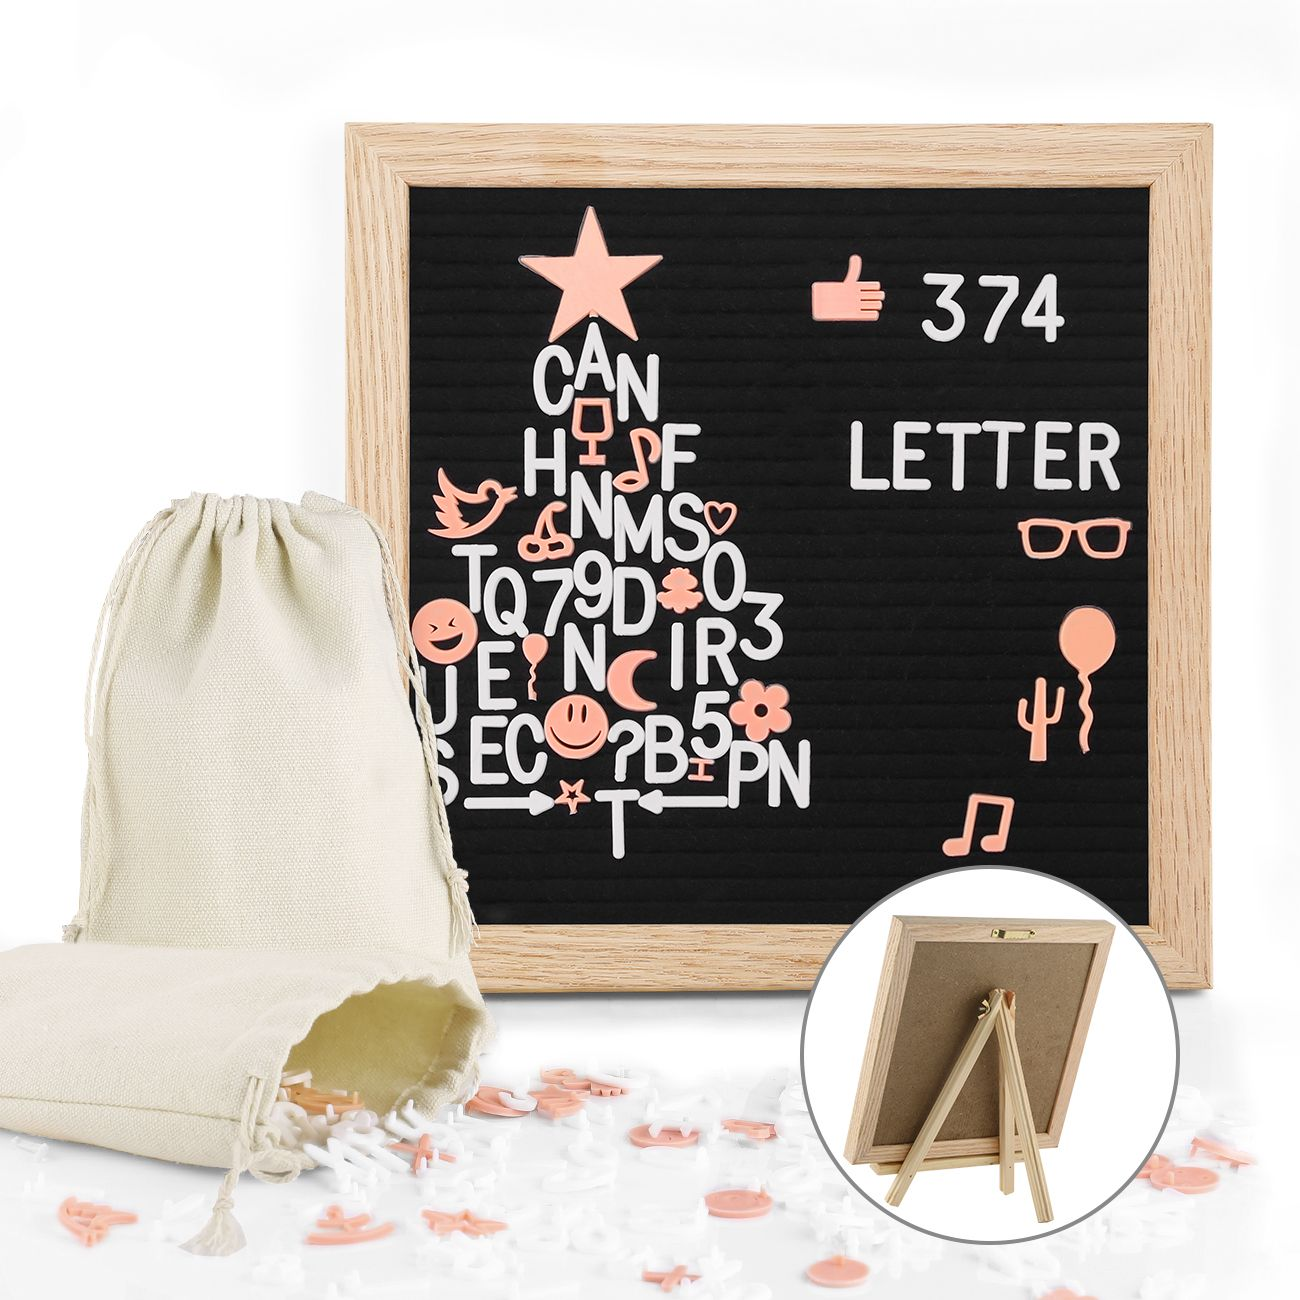 Premium Changeable Felt Letter Board Frame 10x10 Inches Diy Decorative Message Sign Oak Wooden Letter Boards Wi Diy Letter Board Diy Letters Felt Letter Board